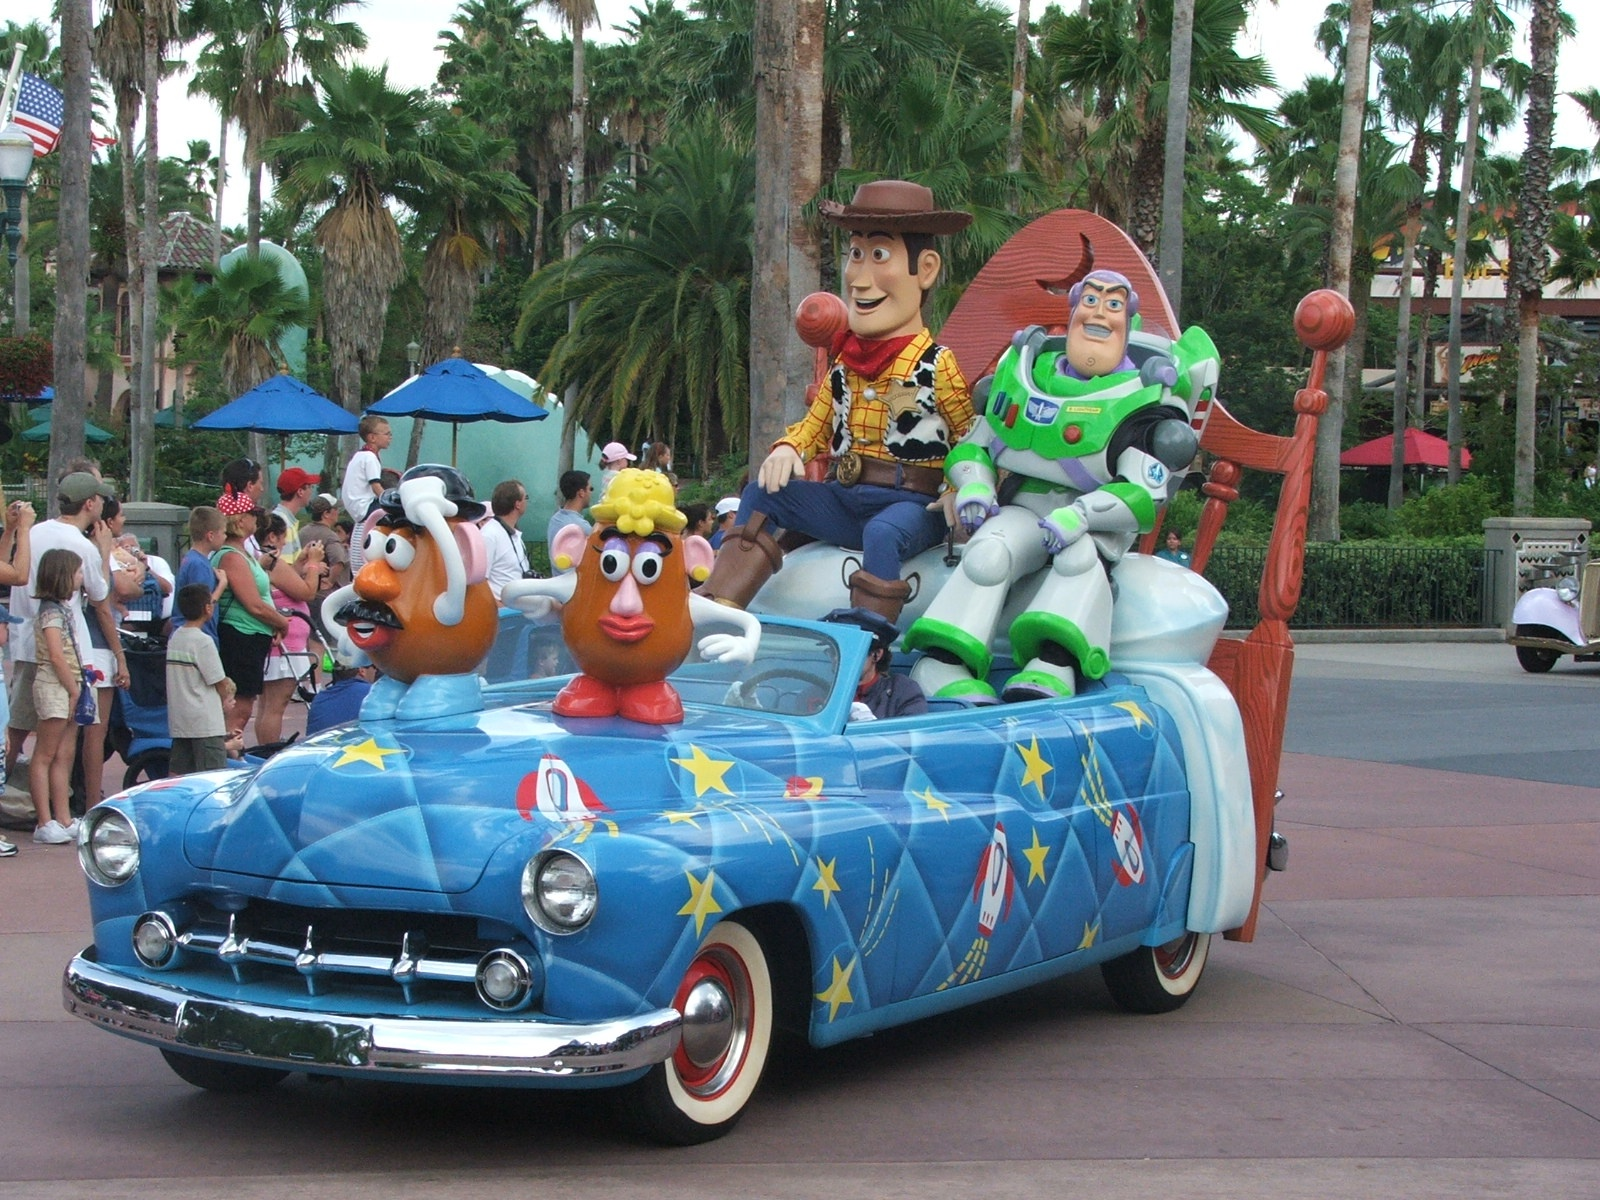 Buzz & Woody in the parade by F J Bering